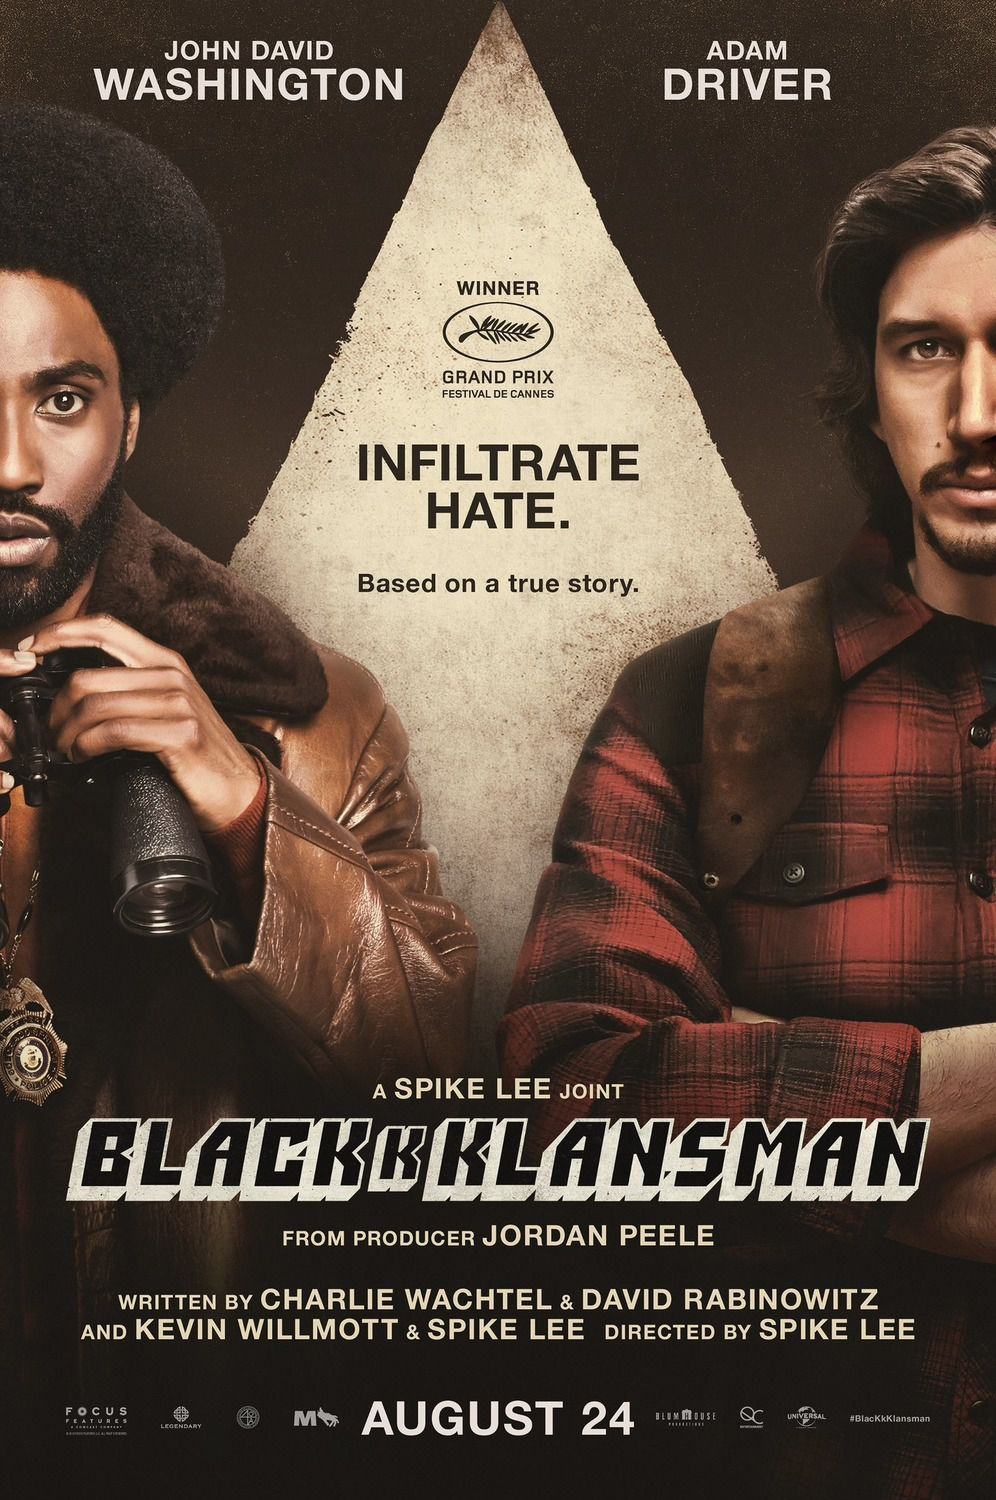 Blackkklansman 2018 by Spike Lee infiltrate hate John David Washington, Adam Driver, Laura Harrier, Topher Grace film poster